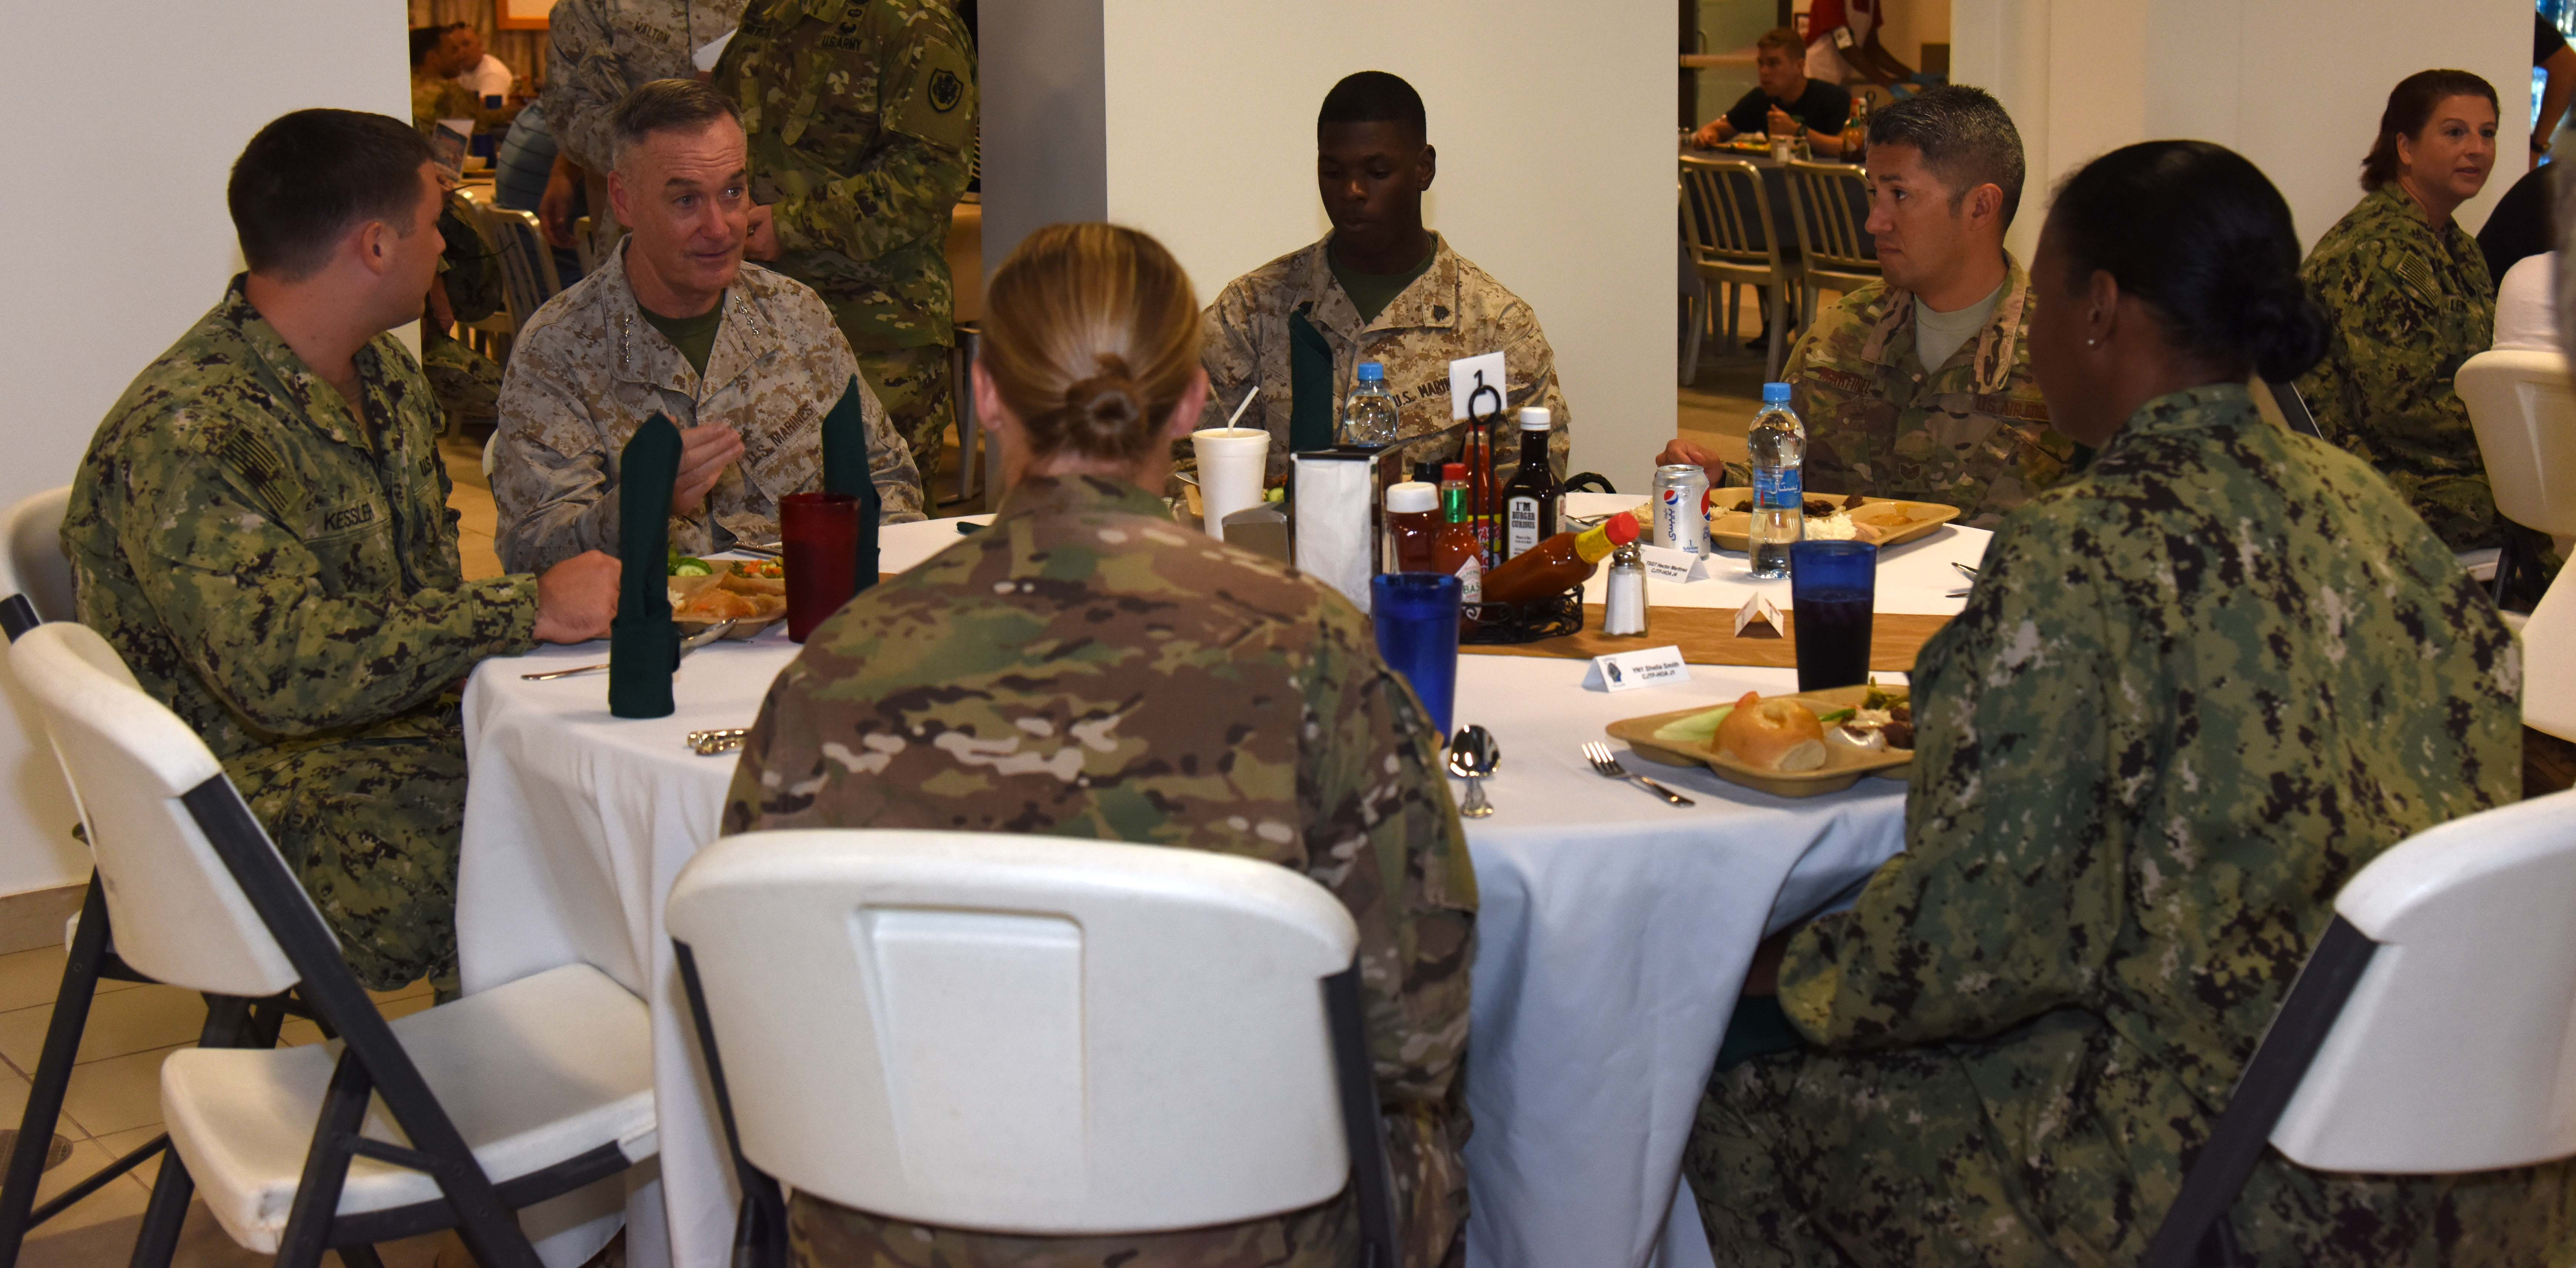 Marine Corps Gen. Joseph Dunford, Chairman of the Joint Chiefs of Staff, shares a meal with service members at Camp Lemonnier, Djibouti, Dec. 6, 2015. The chairman took time, while touring as senior leader for the 2015 USO entertainment troupe tour, to thank service members for their dedication and sacrifice during the holiday season. (U.S. Air Force photo by Staff Sgt. Victoria Sneed)